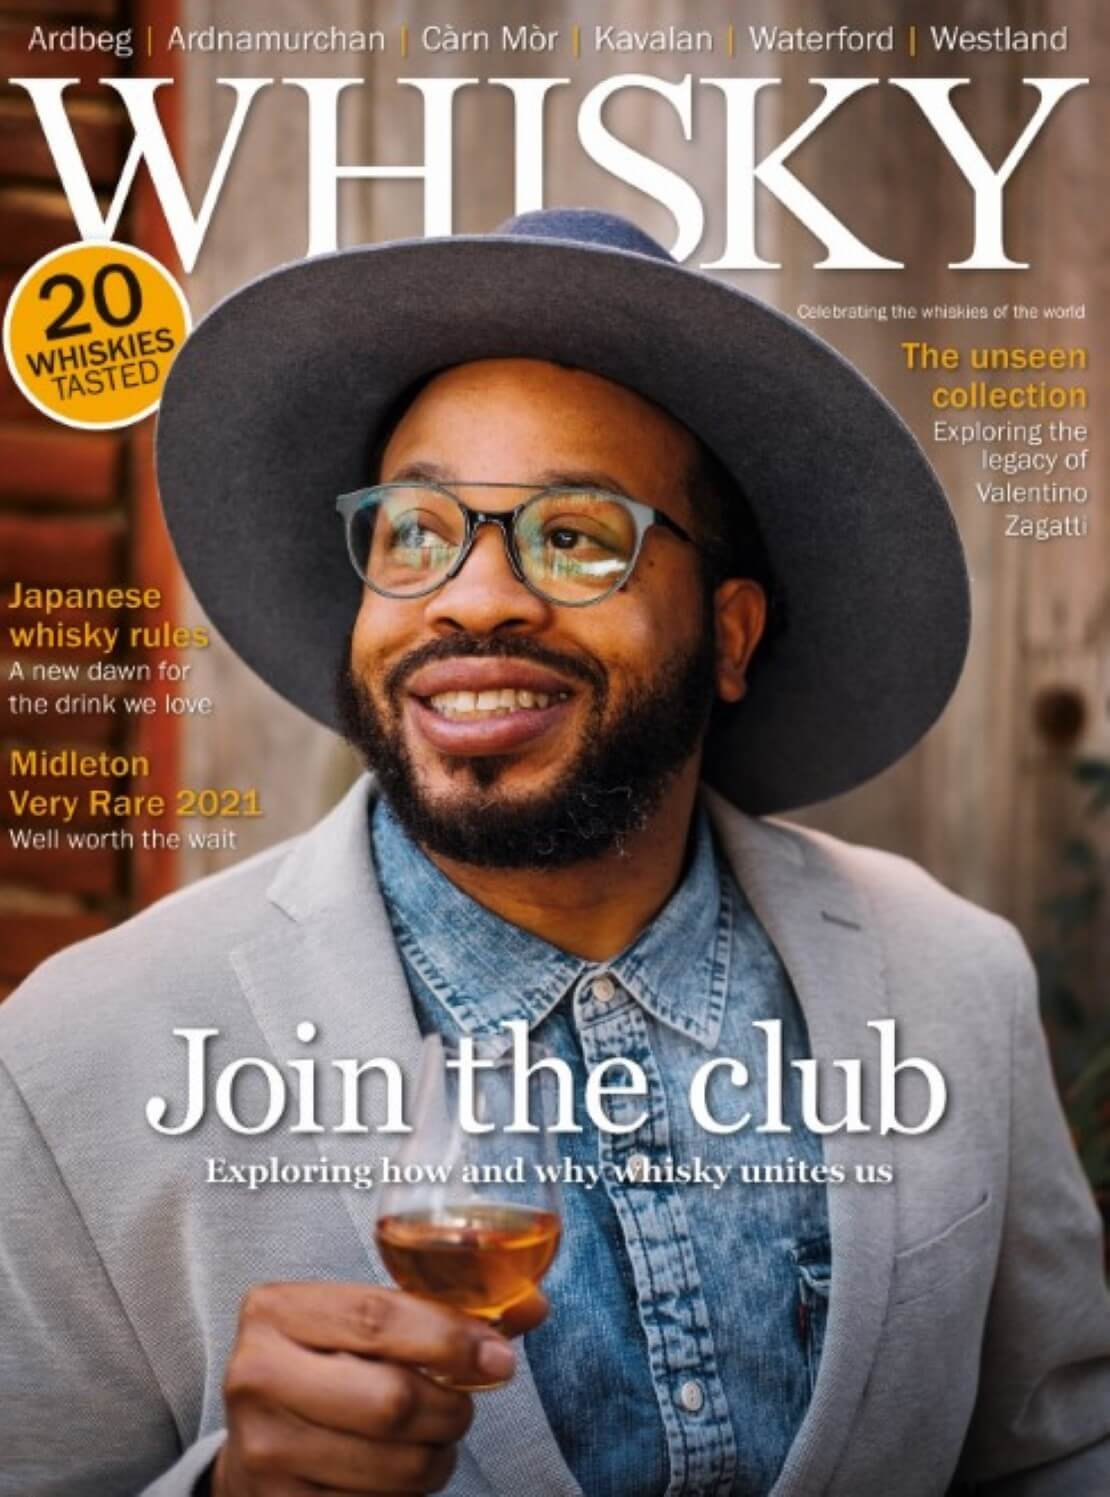 Whisky Clubs & Societies Diversity and Inclusivity in Whisky The Unseen Collection Japanese Whisky's New...